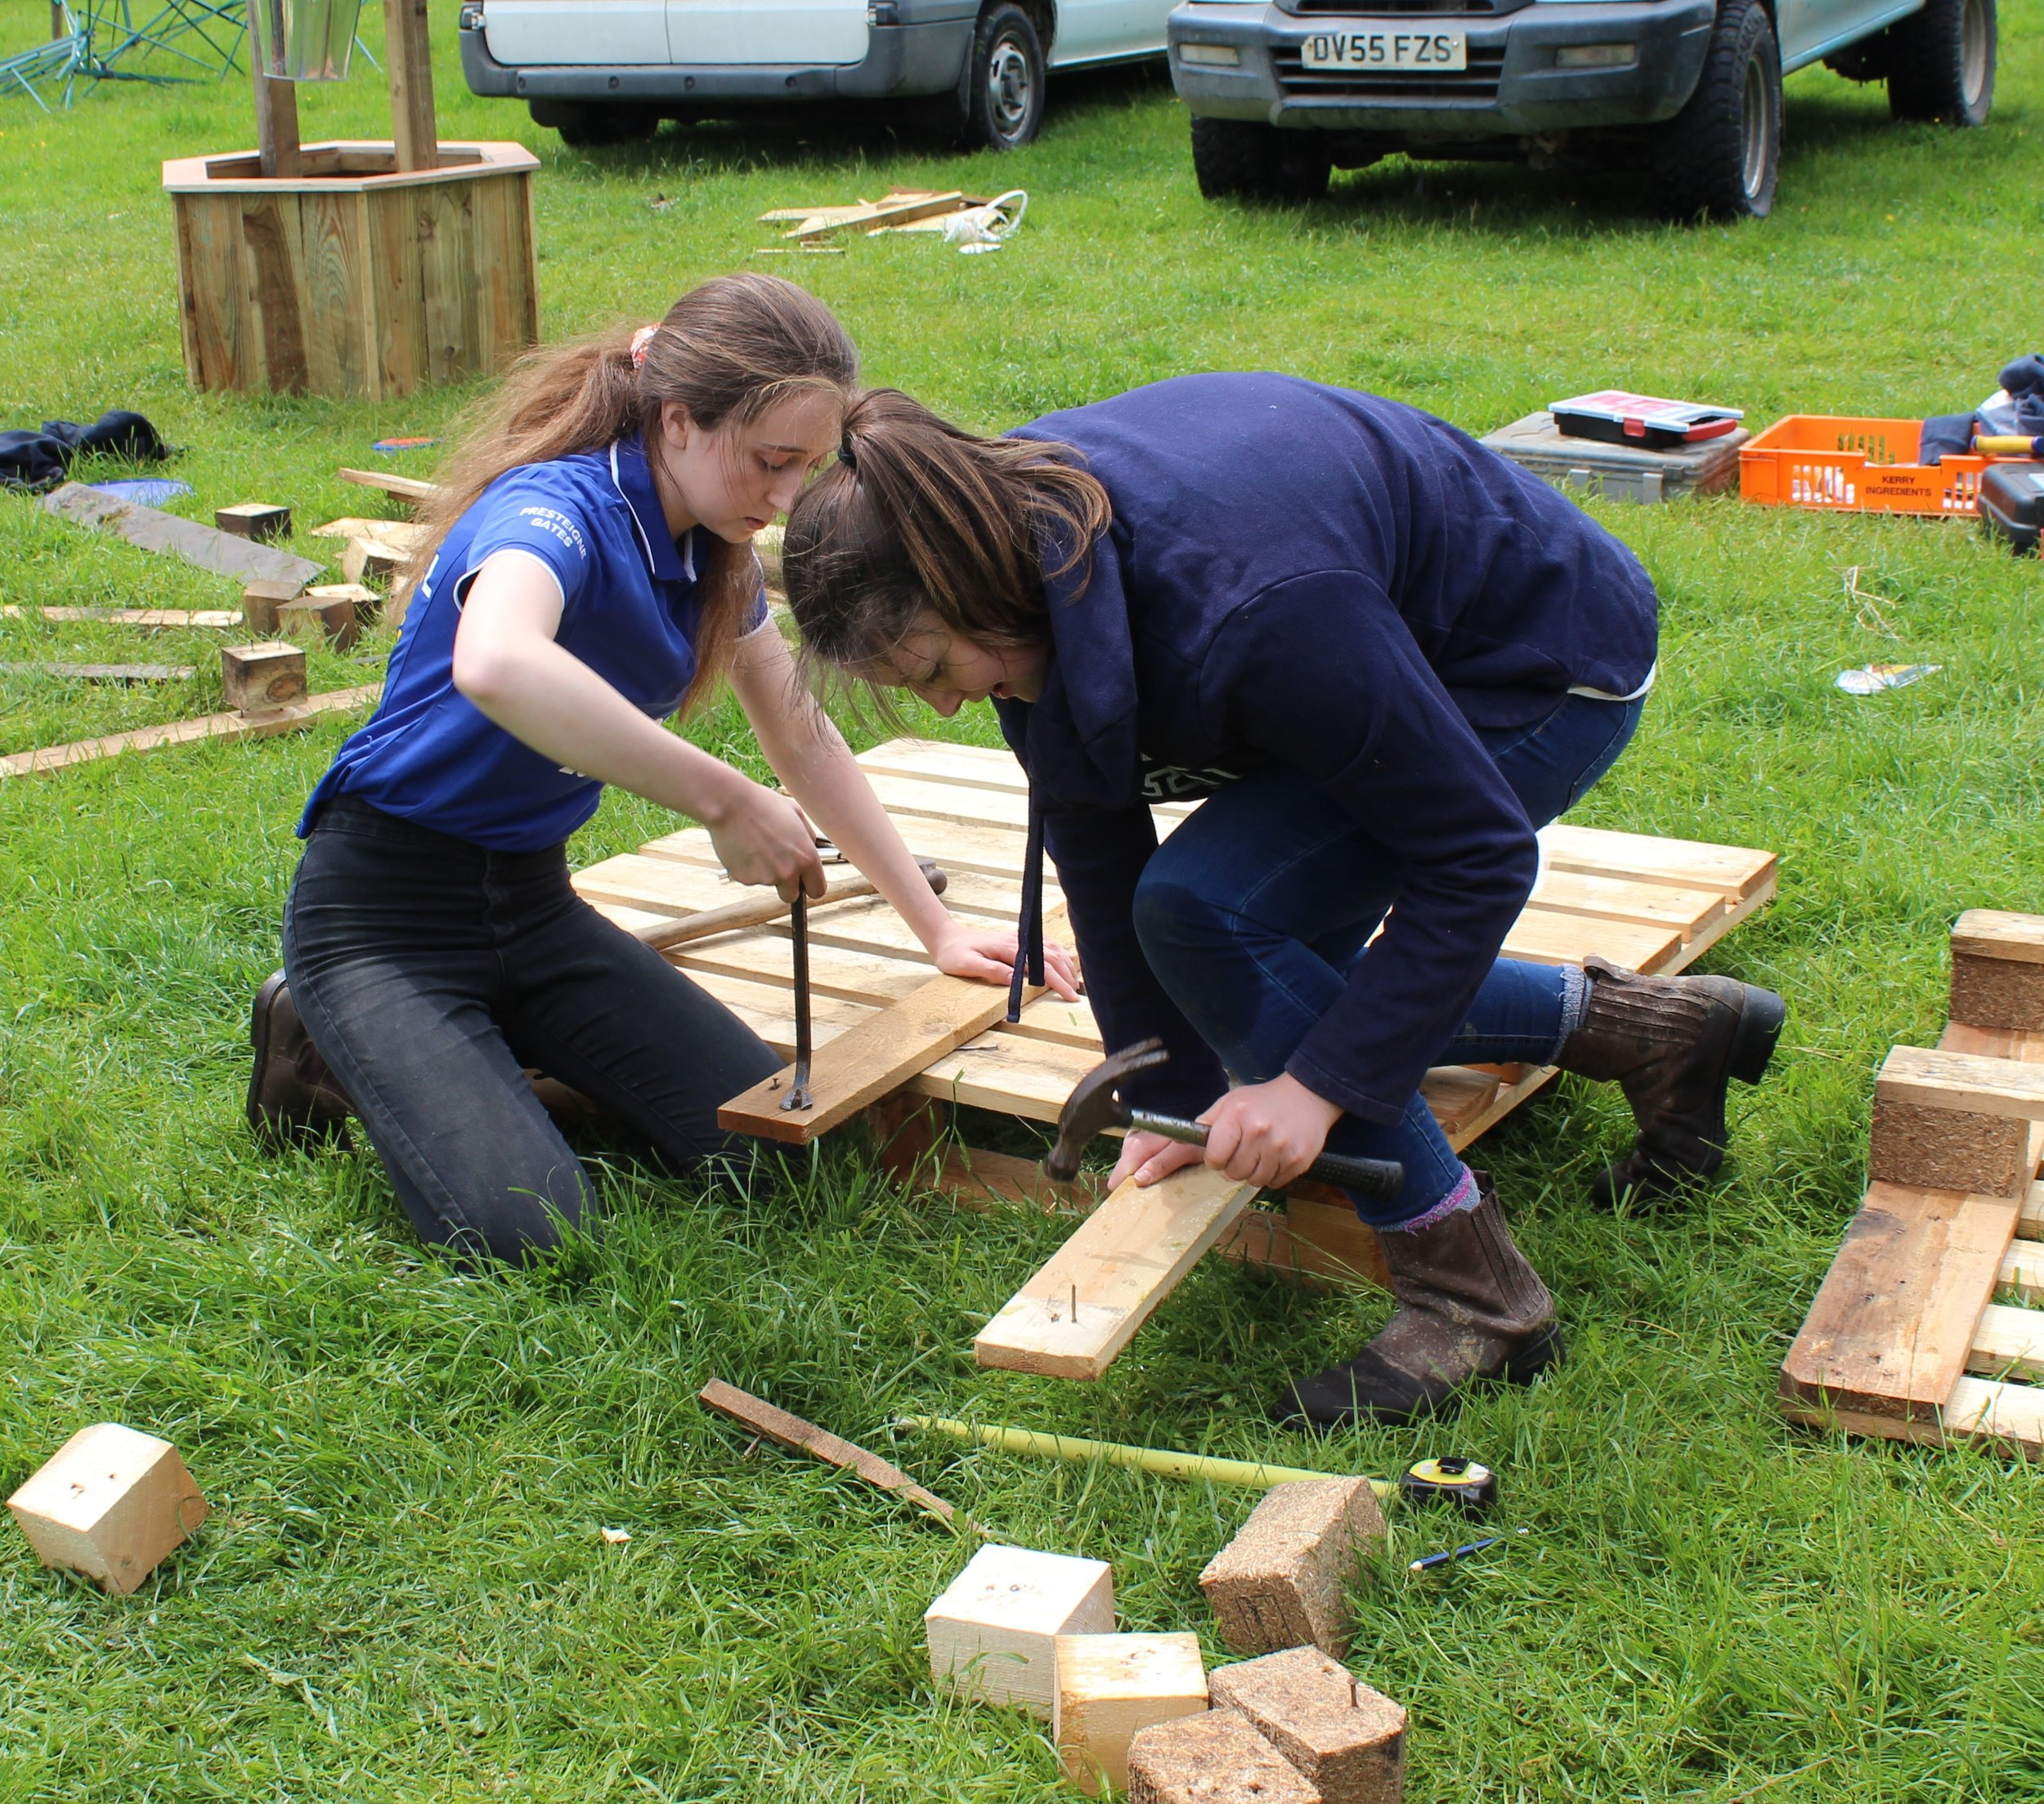 Presteigne YFC in the Pallet Recycling competition.